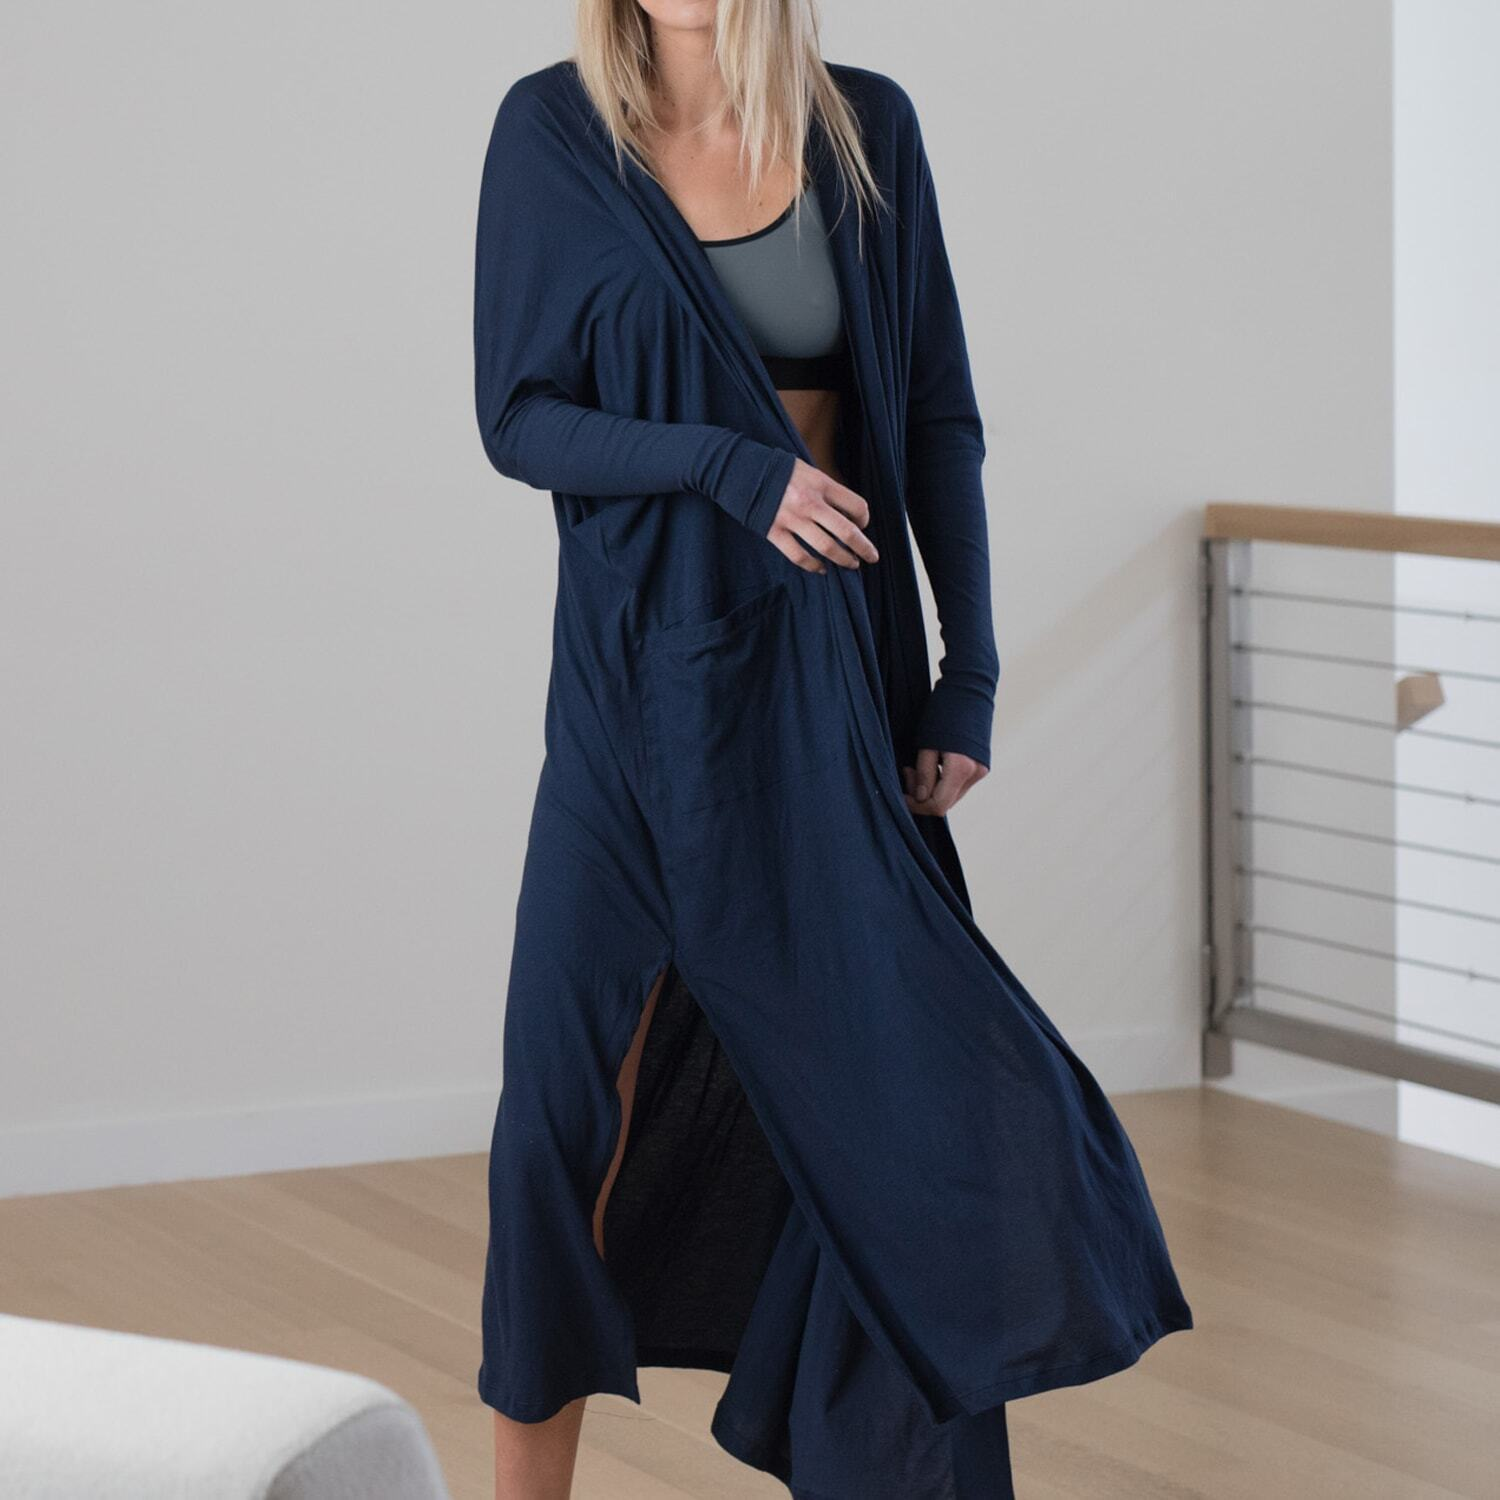 Lunya Sleepwear Pima Long Cardigan - #Deep Night